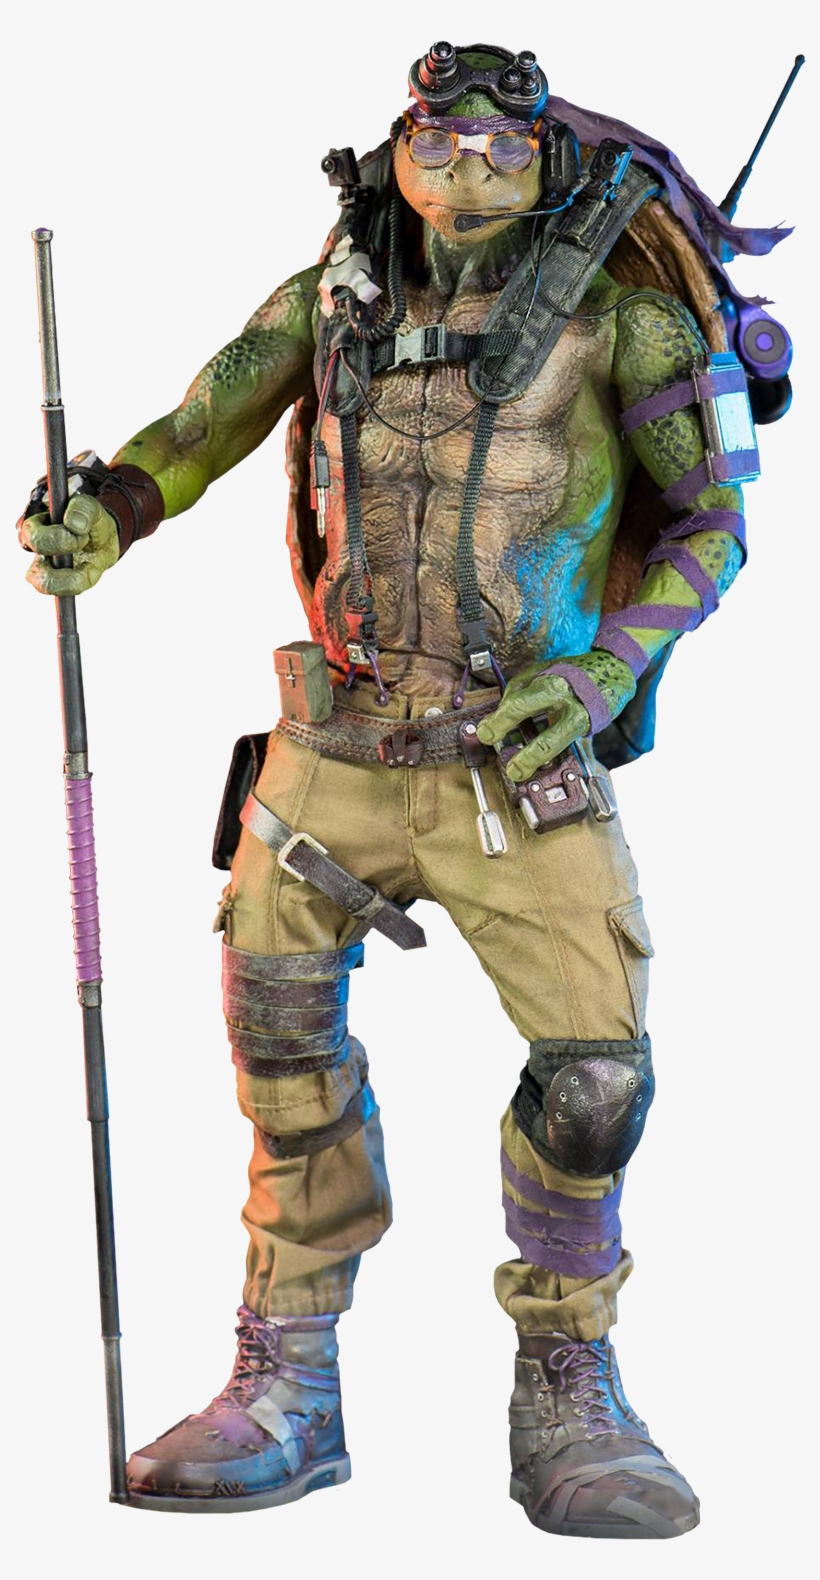 Teenage Mutant Ninja Turtles Teenage Mutant Ninja Turtles 2 Donatello Free Transparent Png Download Pngkey